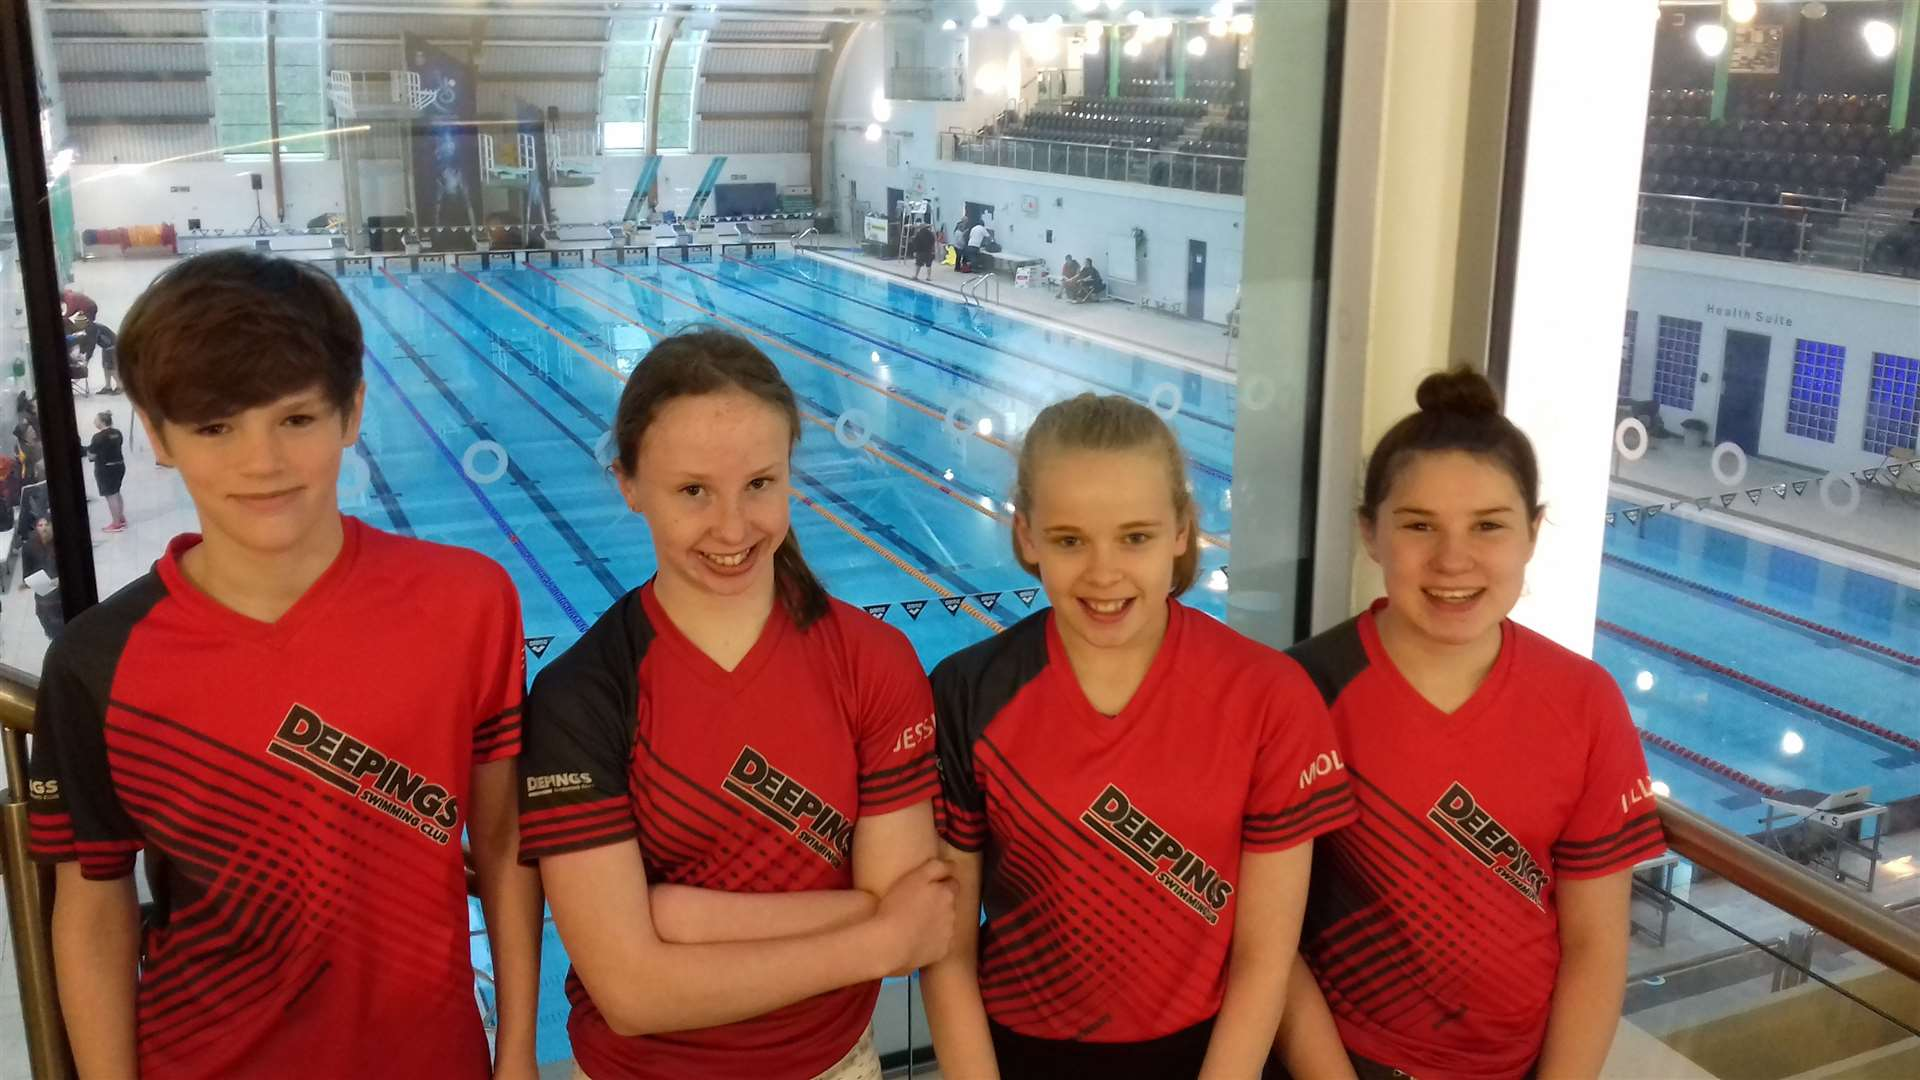 The Deepings quartet which competed at the 2019 East Midlands Regional Championships at Corby last weekend. From the left: Alex Sadler, Jessica O'Herlihy, Molly Briers and Lilly Tappern. (9472144)